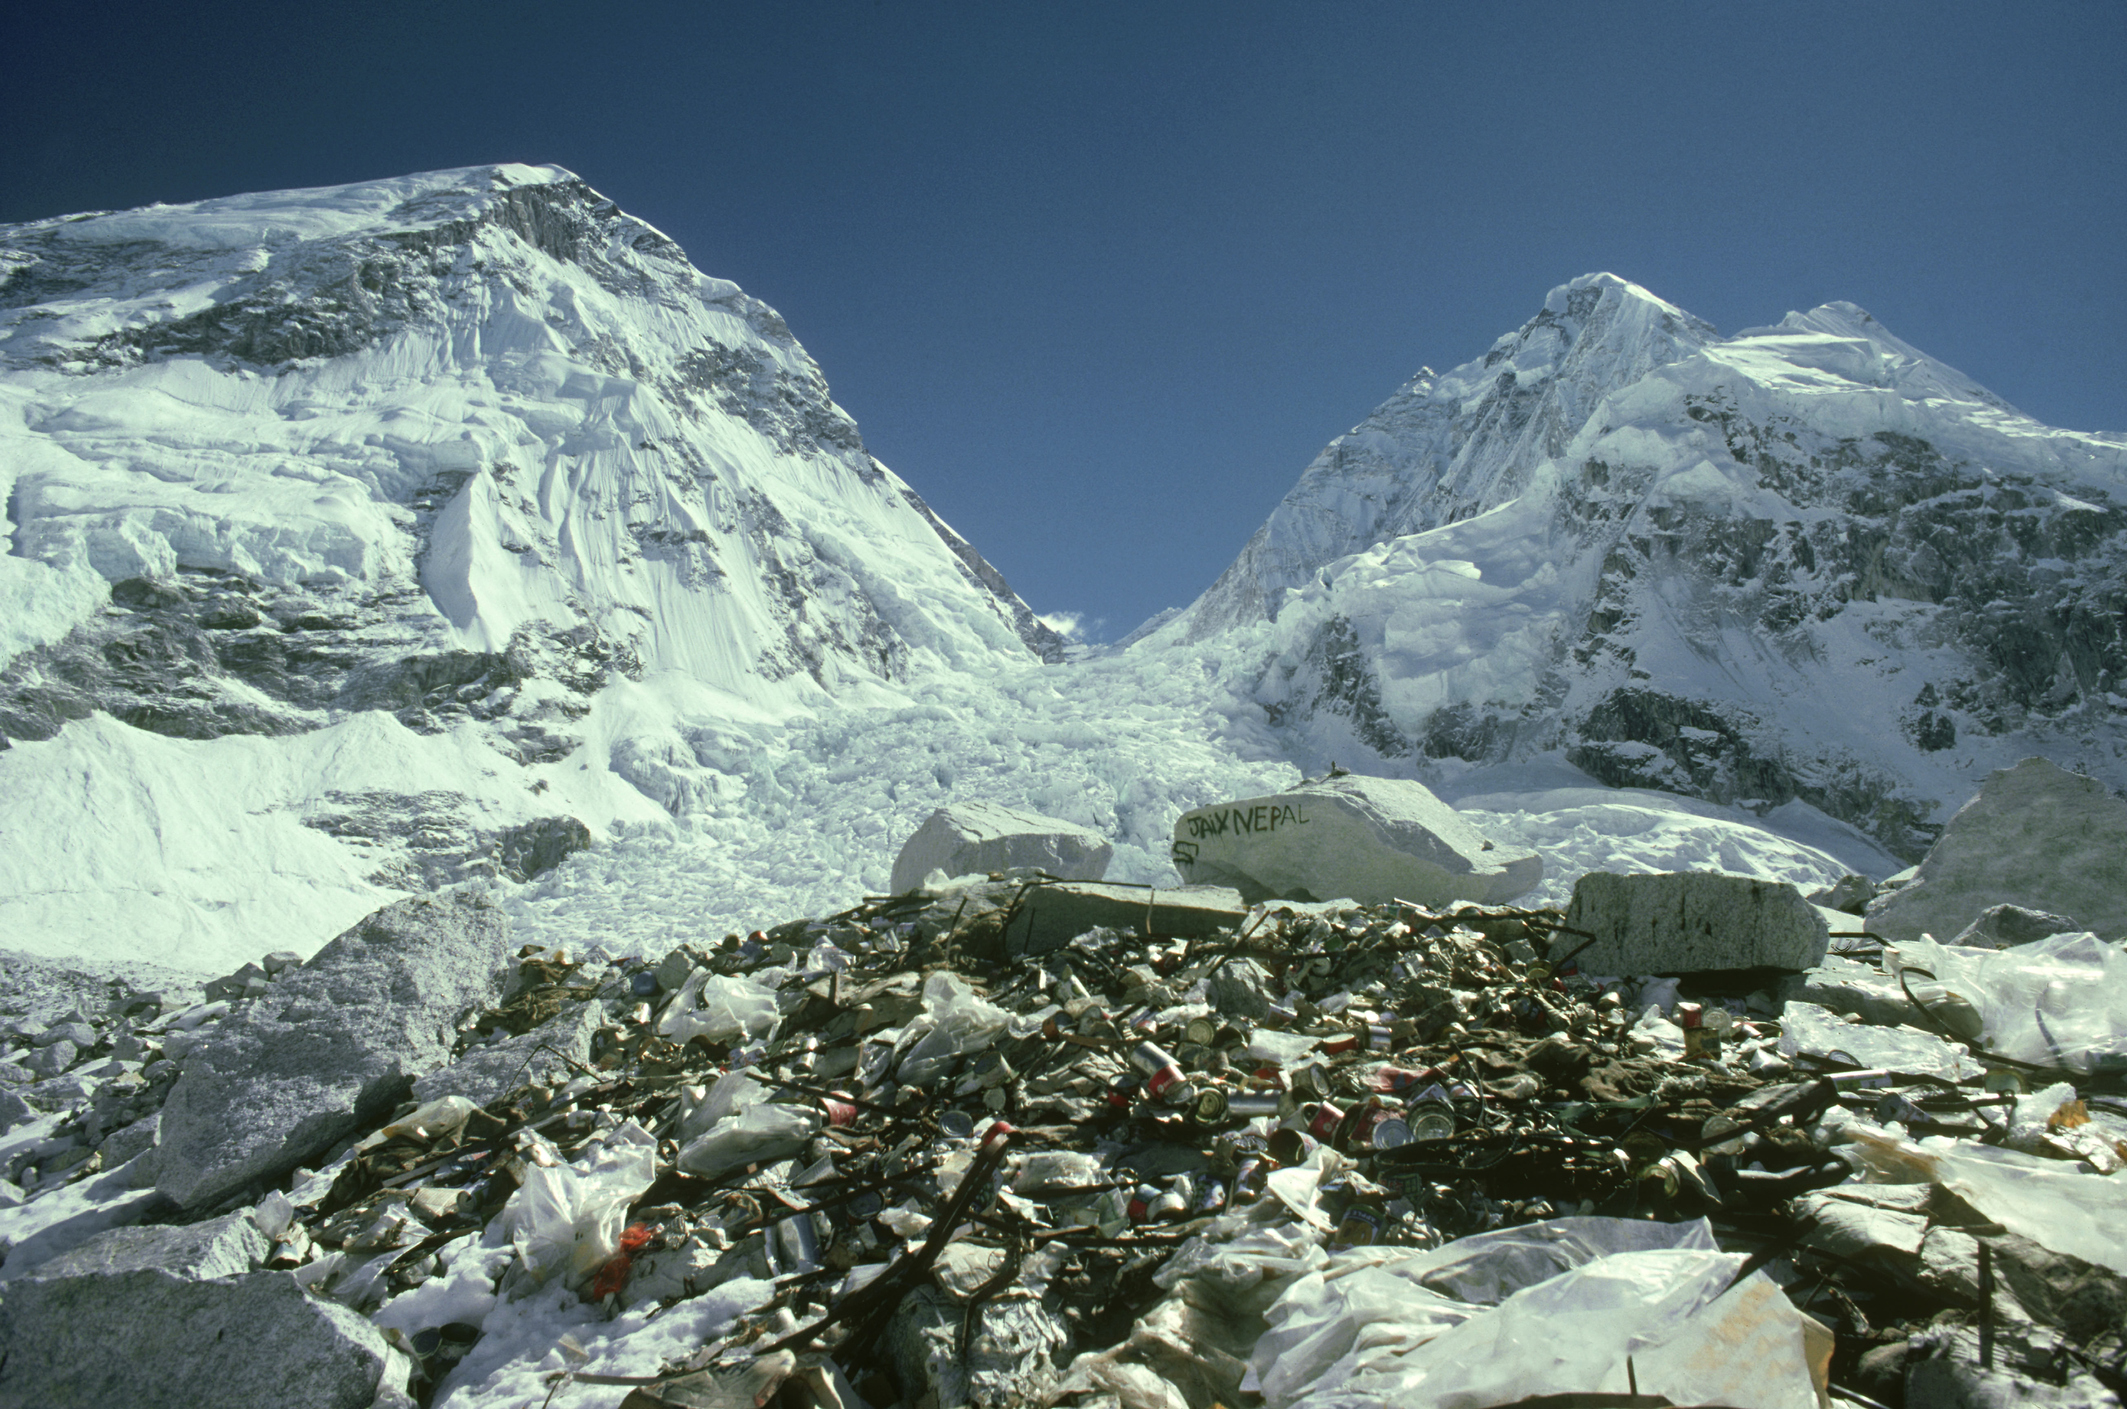 rubbish left by expeditions: 17,500   everest base camp  nepal